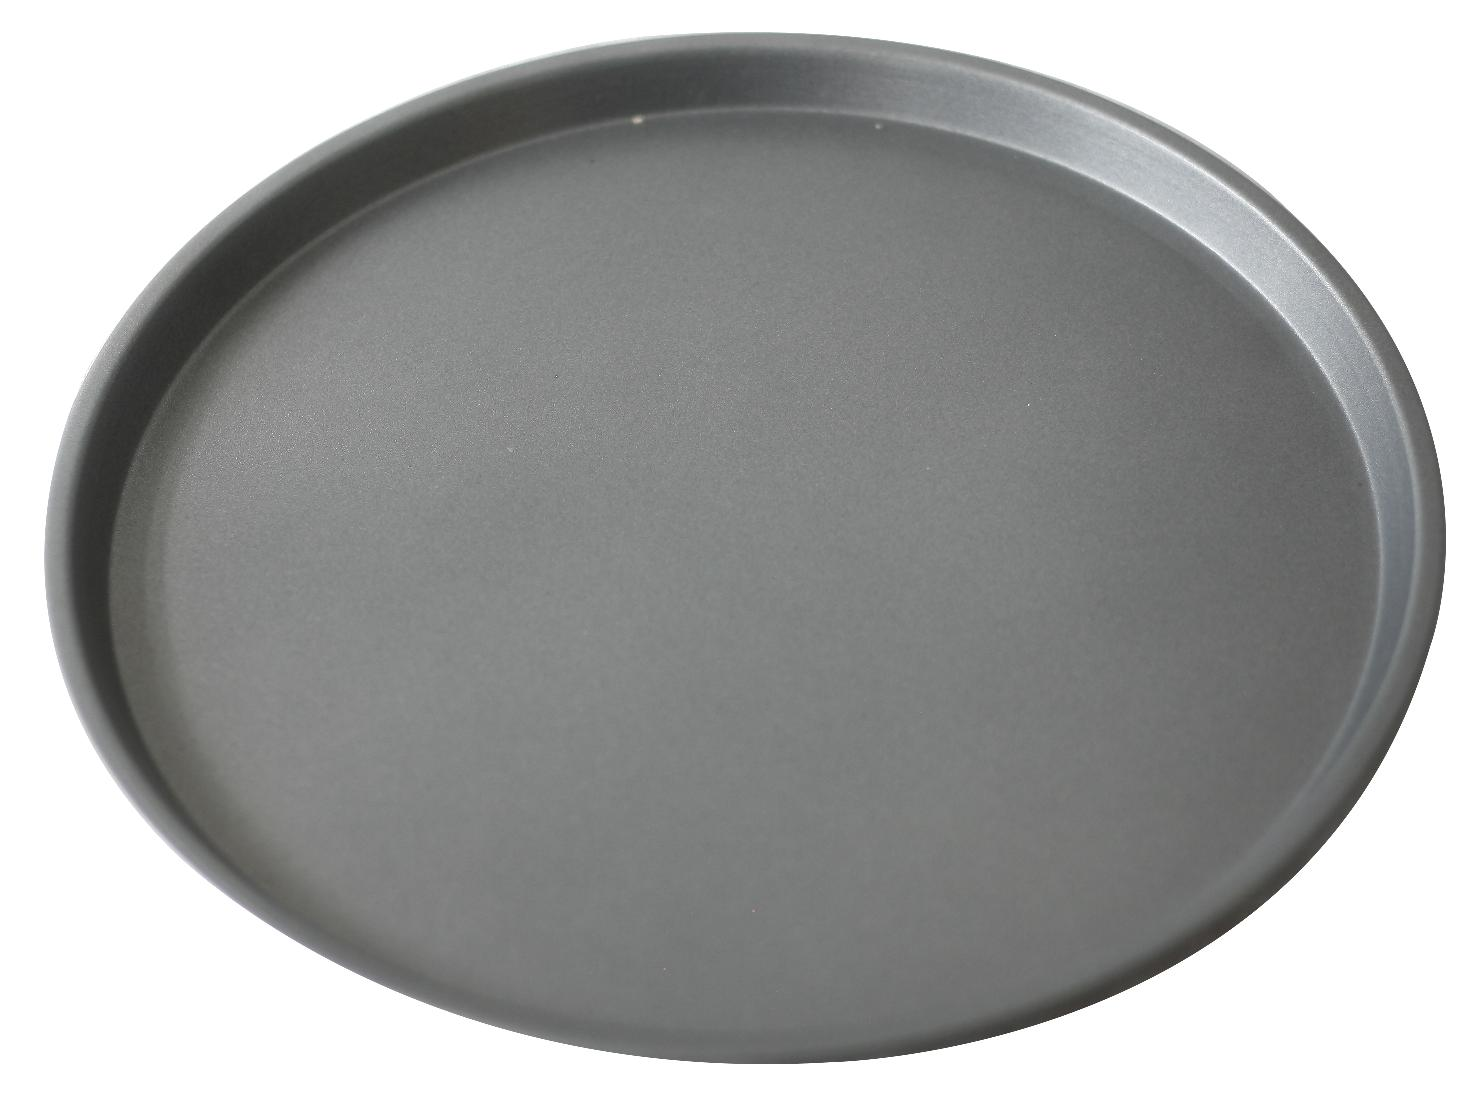 Big-J Loyang Pizza 10 Inch - Pizza Pan 25,7x1,2cm By Gudangkita Com.